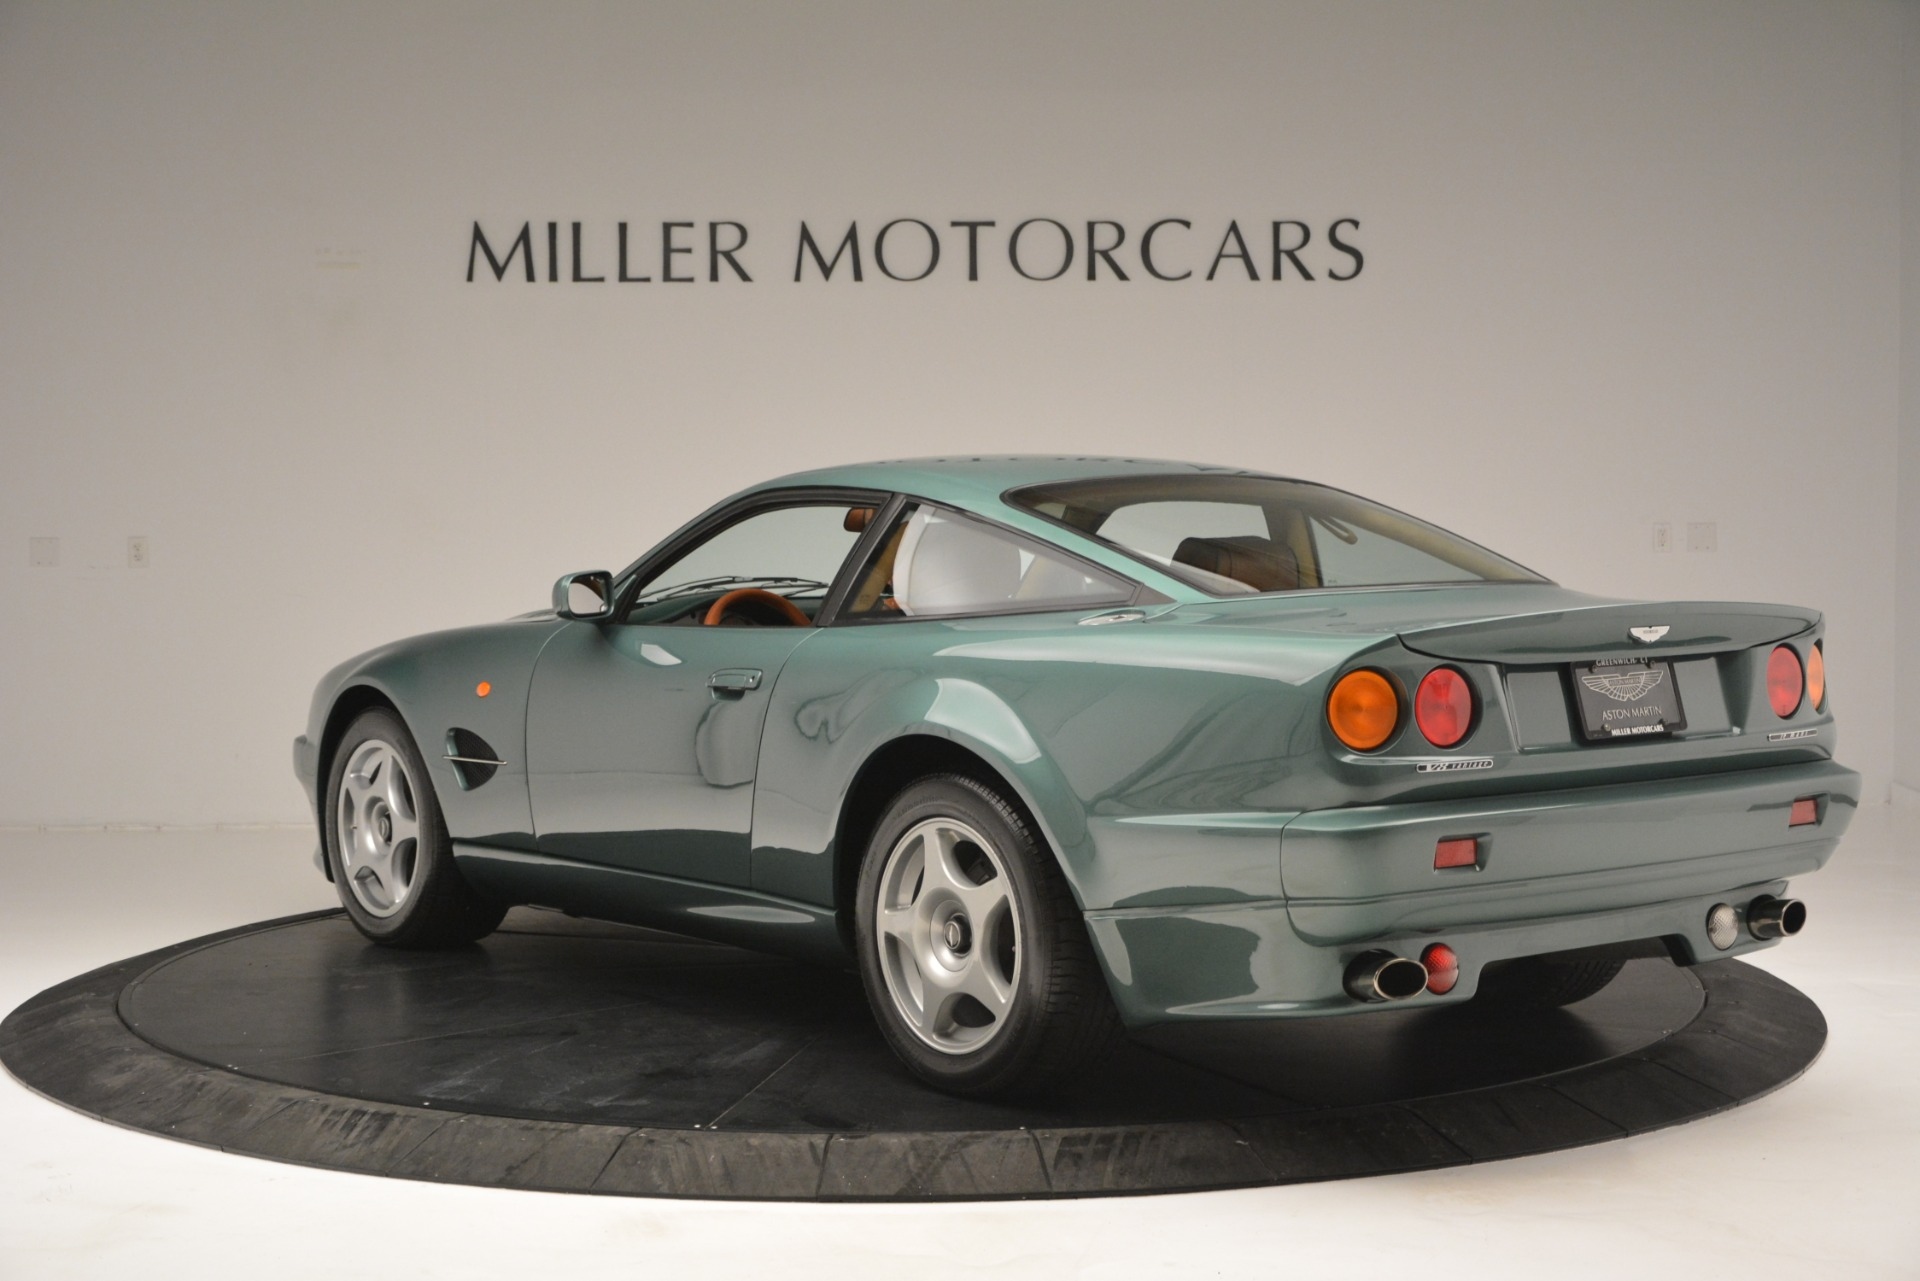 Used 1999 Aston Martin V8 Vantage Le Mans V600 Coupe For Sale In Greenwich, CT 2789_p6